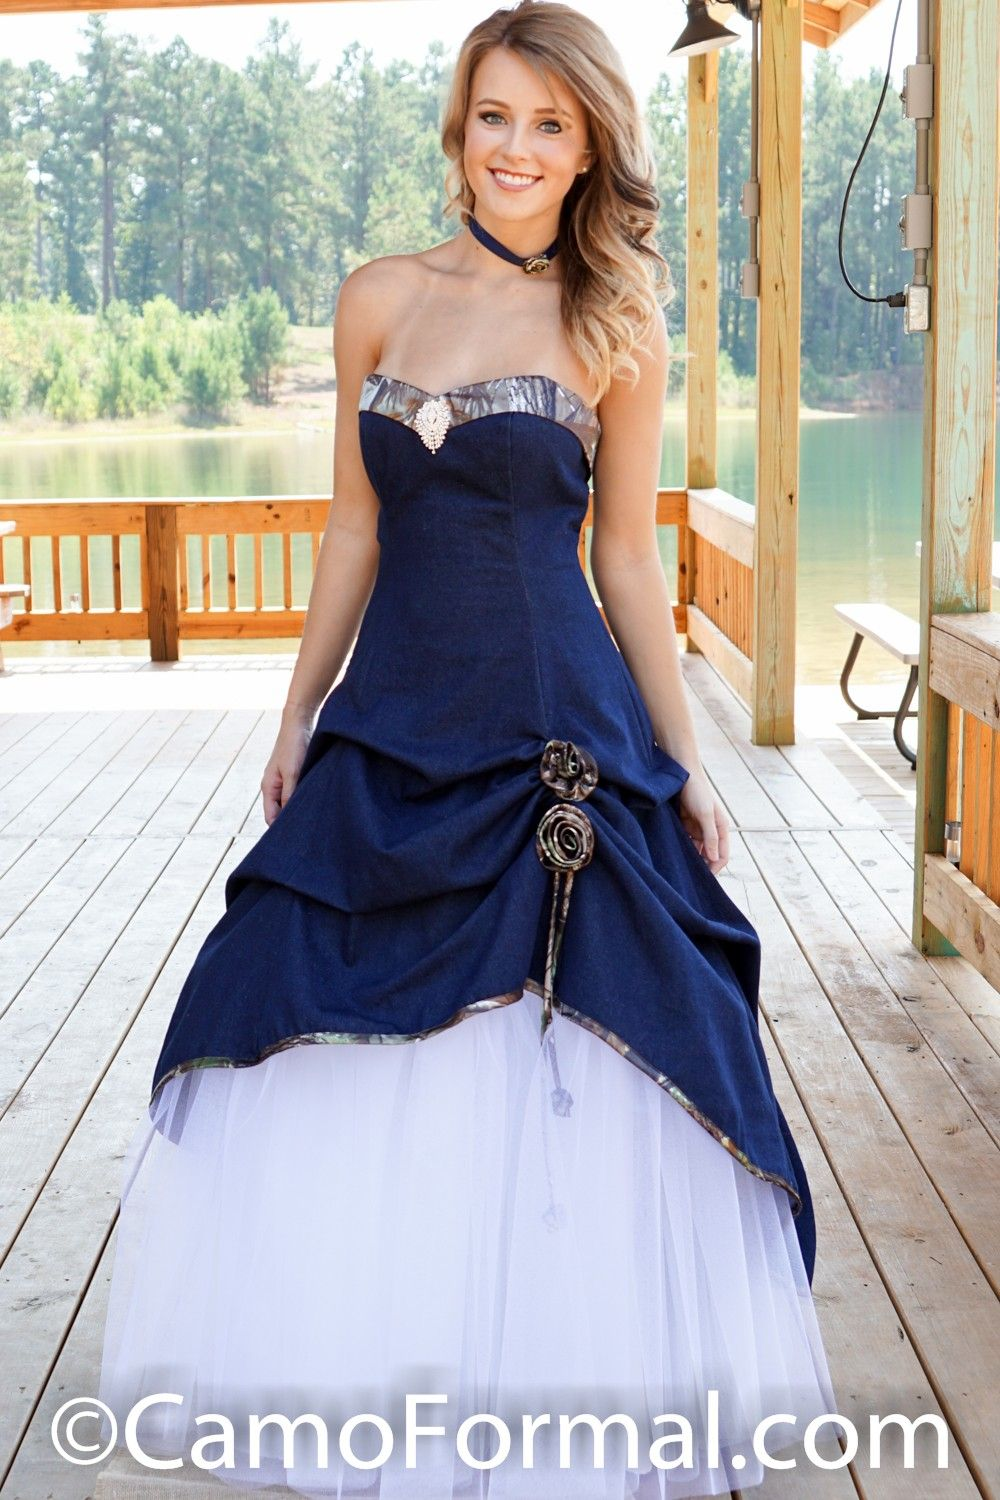 Sweetheart A Line Pickup Dress With Net Skirt Highlighted With A Waterfall Rhinestone Pin The Matchi Camo Wedding Dresses Denim Wedding Denim Wedding Dresses